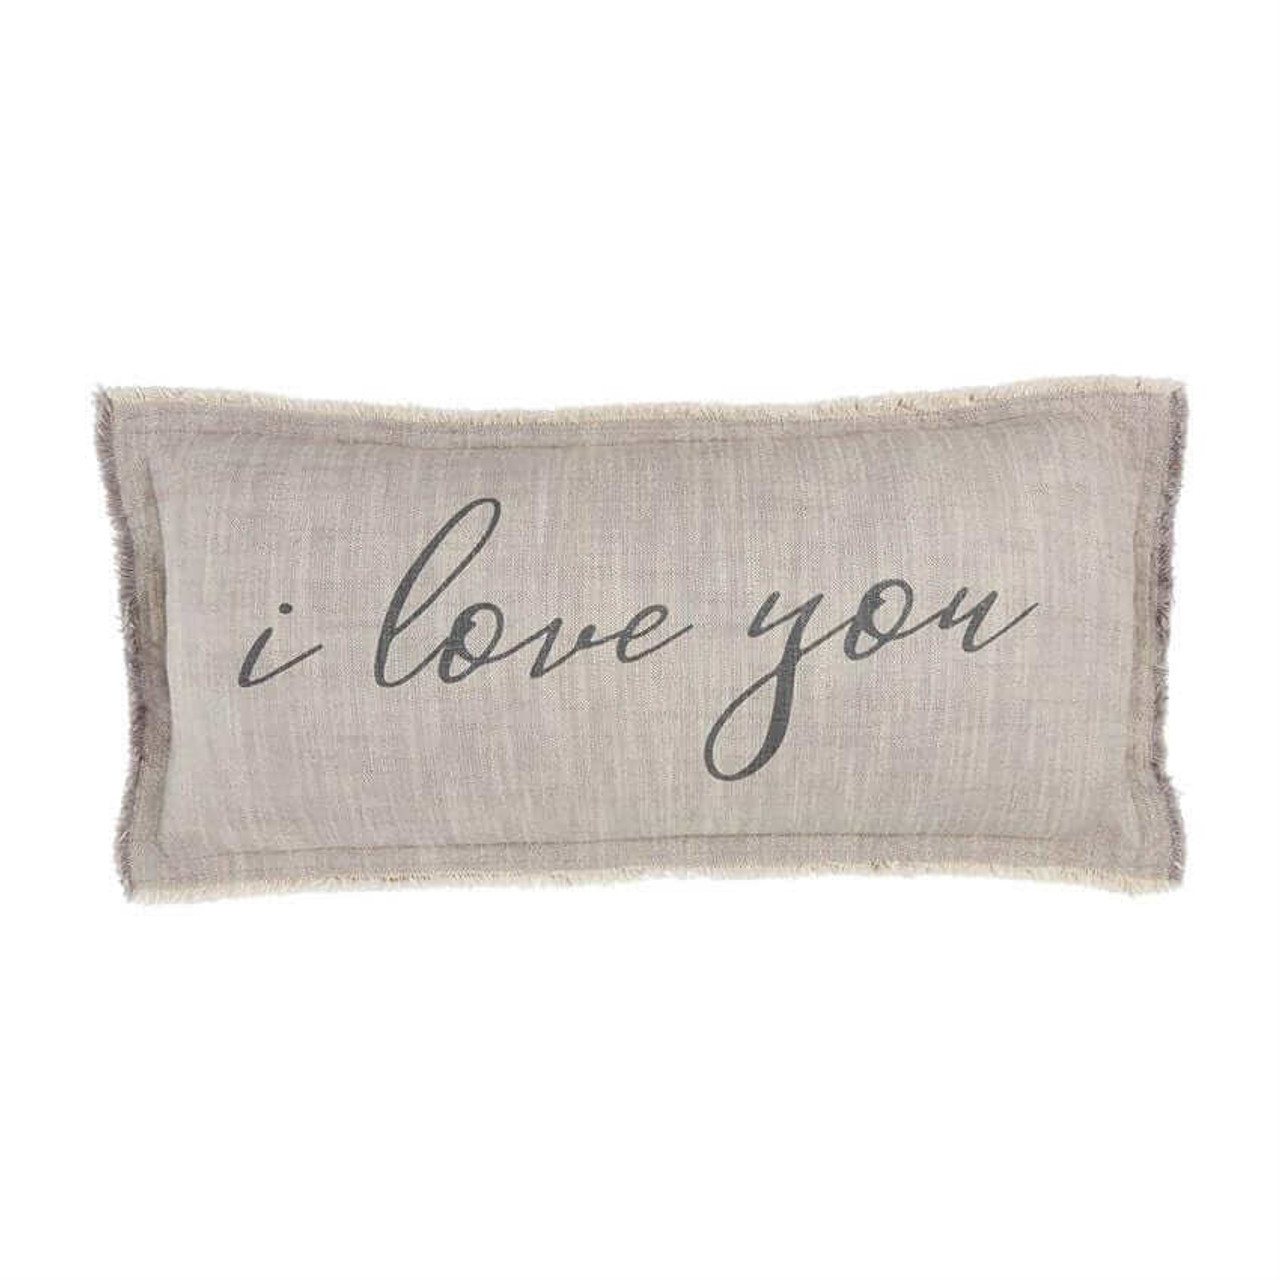 """This """"Ilove you"""" pillowadds a heartwarming touch to your collection of home decor. Printed cotton pillow features frayed fringe and zipper closure. Approx 11"""" x 22""""."""